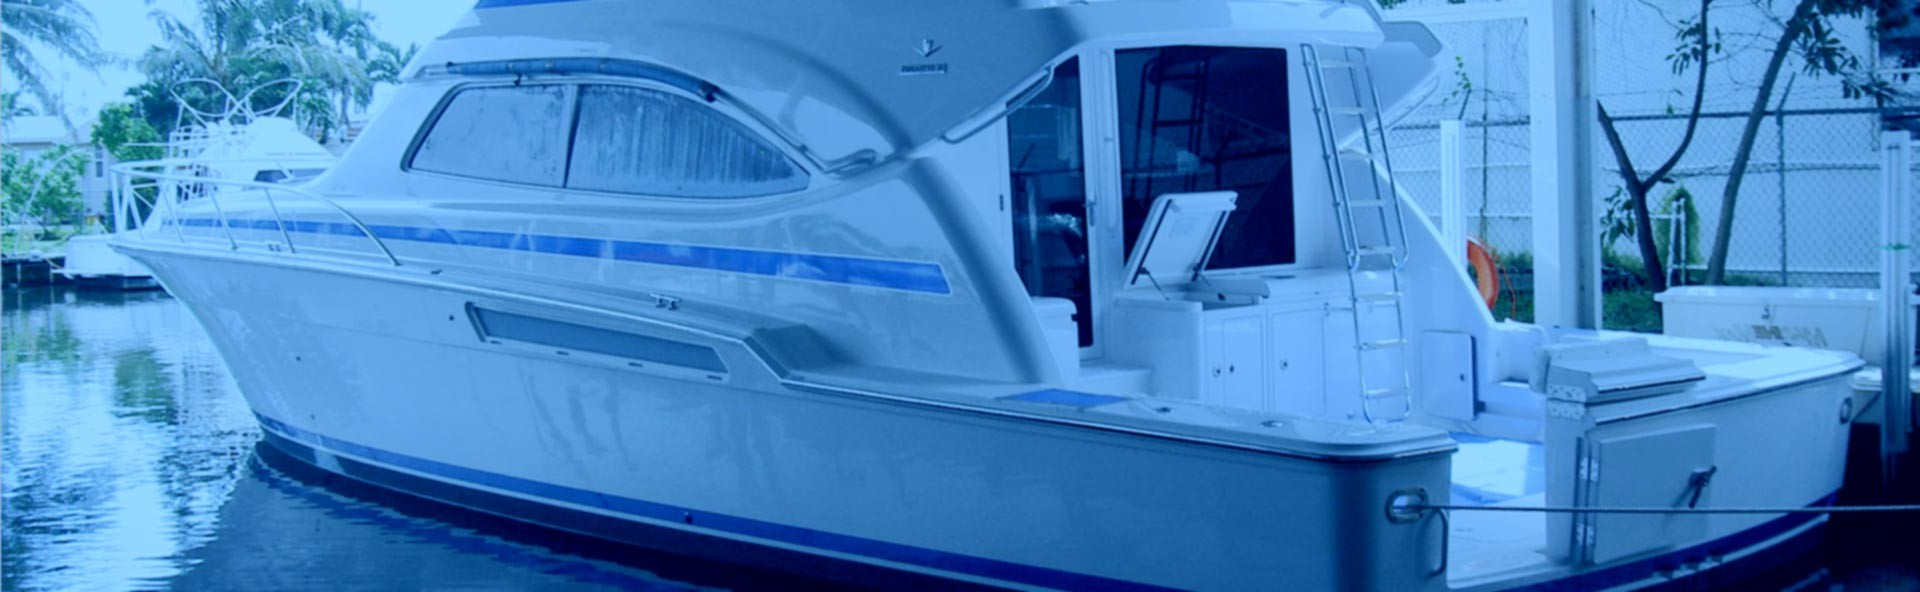 boatweb02blue